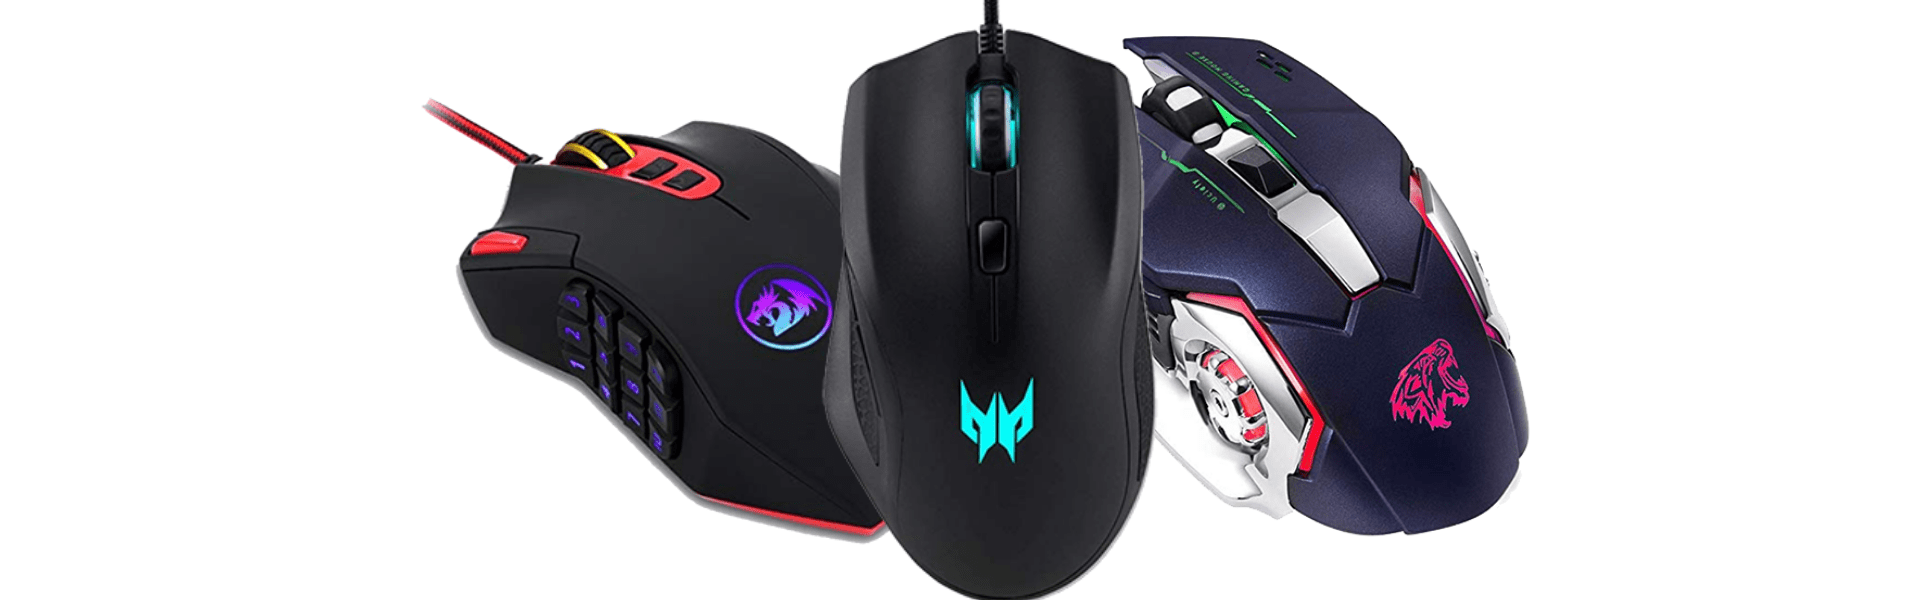 best mouses for wow - world of warcraft